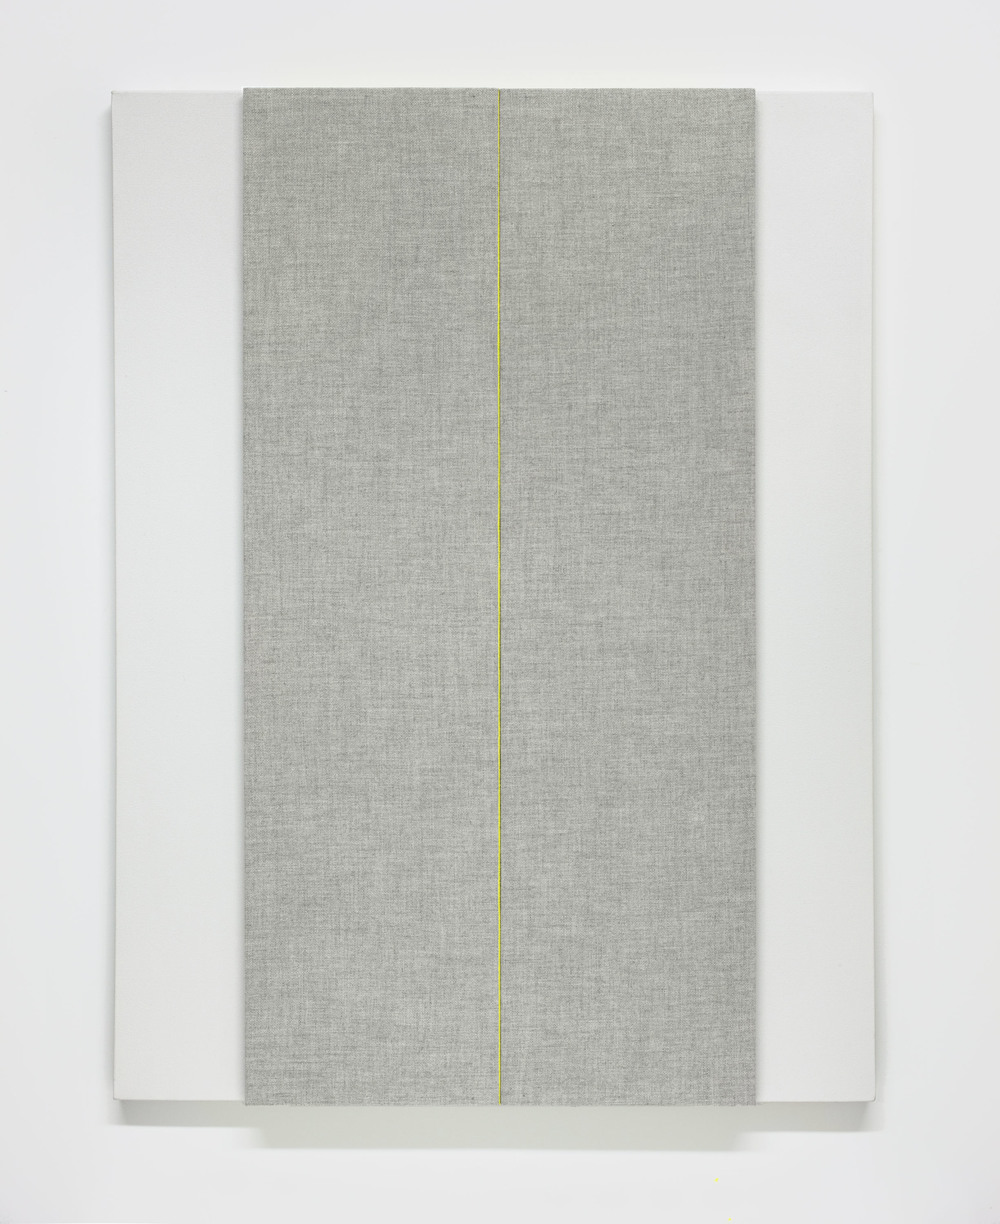 Light Gray with Middle C (variation #2)-- Acoustic absorber panel and acrylic paint on canvas, 36 x 48 inches, 2013.